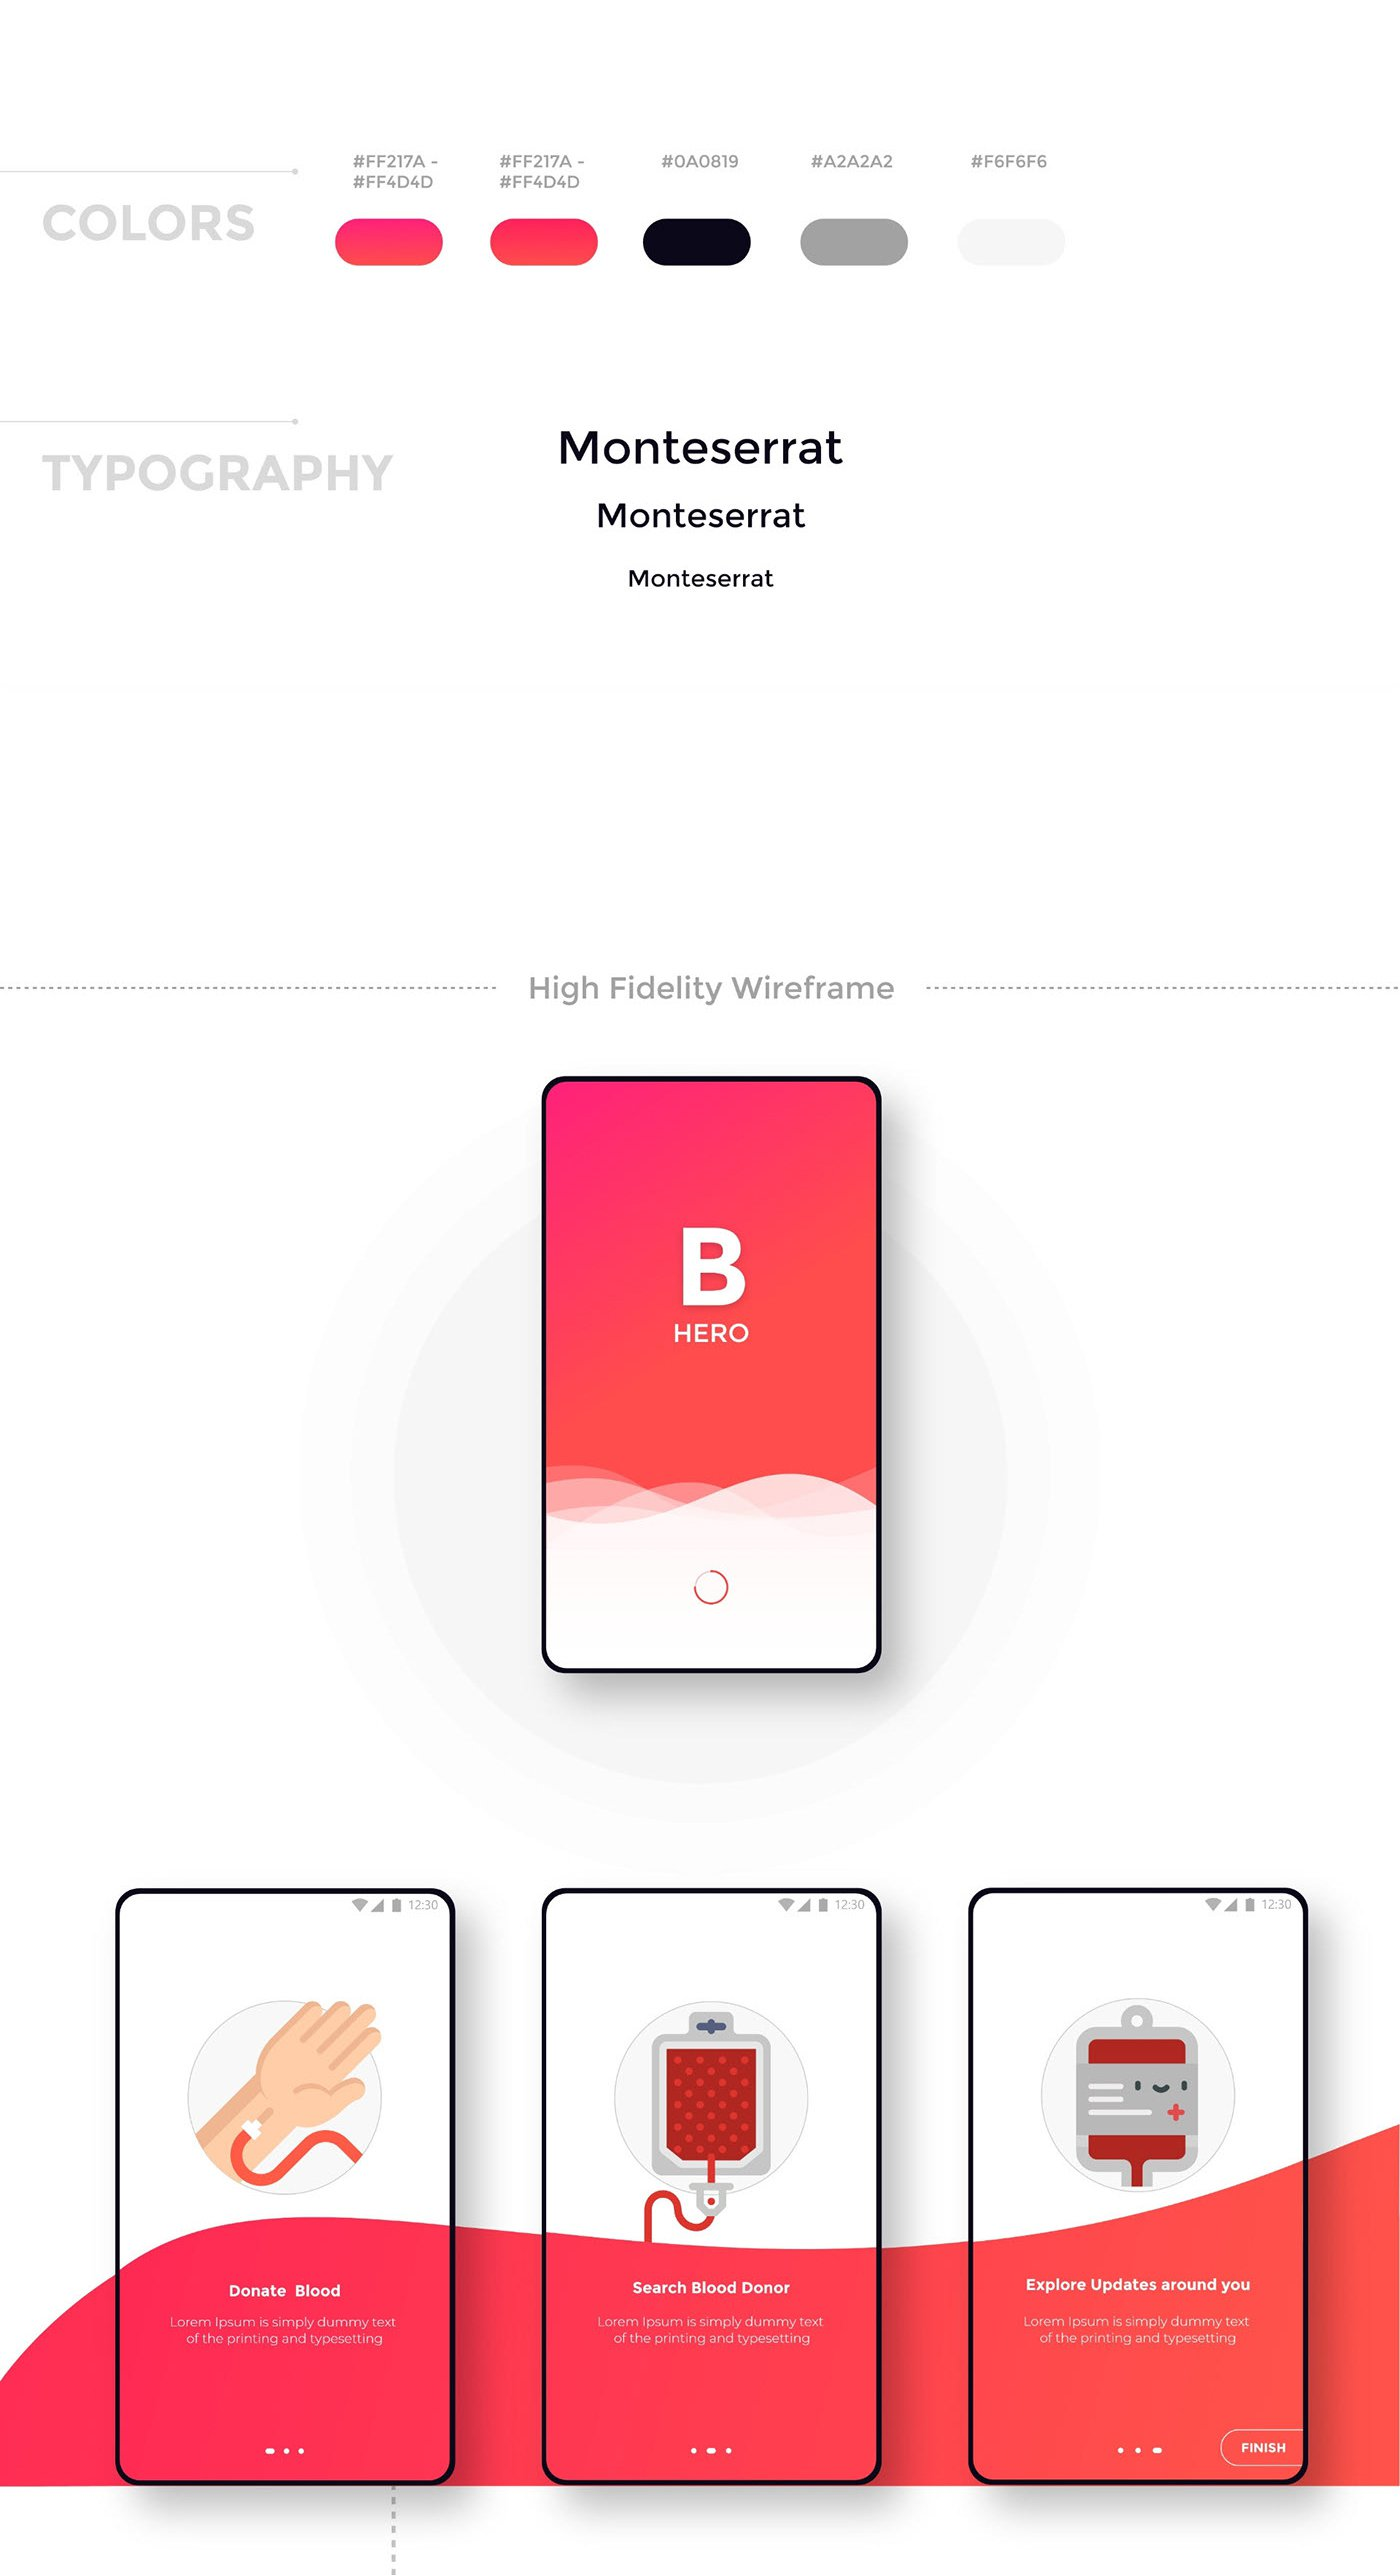 B Hero - Blood donation app free UI kit Adobe XD